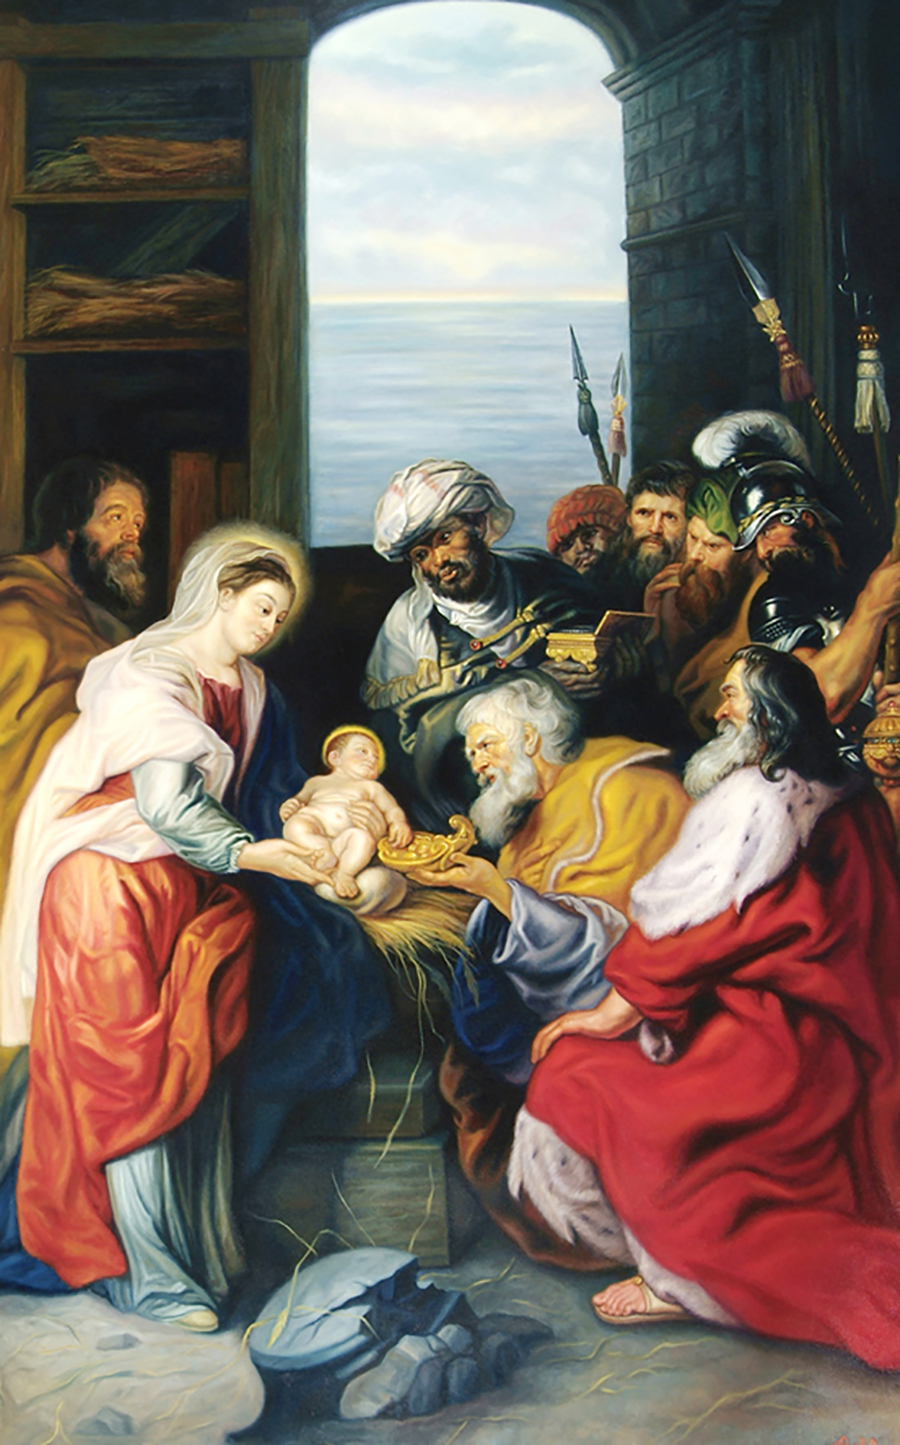 Nativity (Rubens), Nativity of Our Lord Church, Monroe Twp., NJ